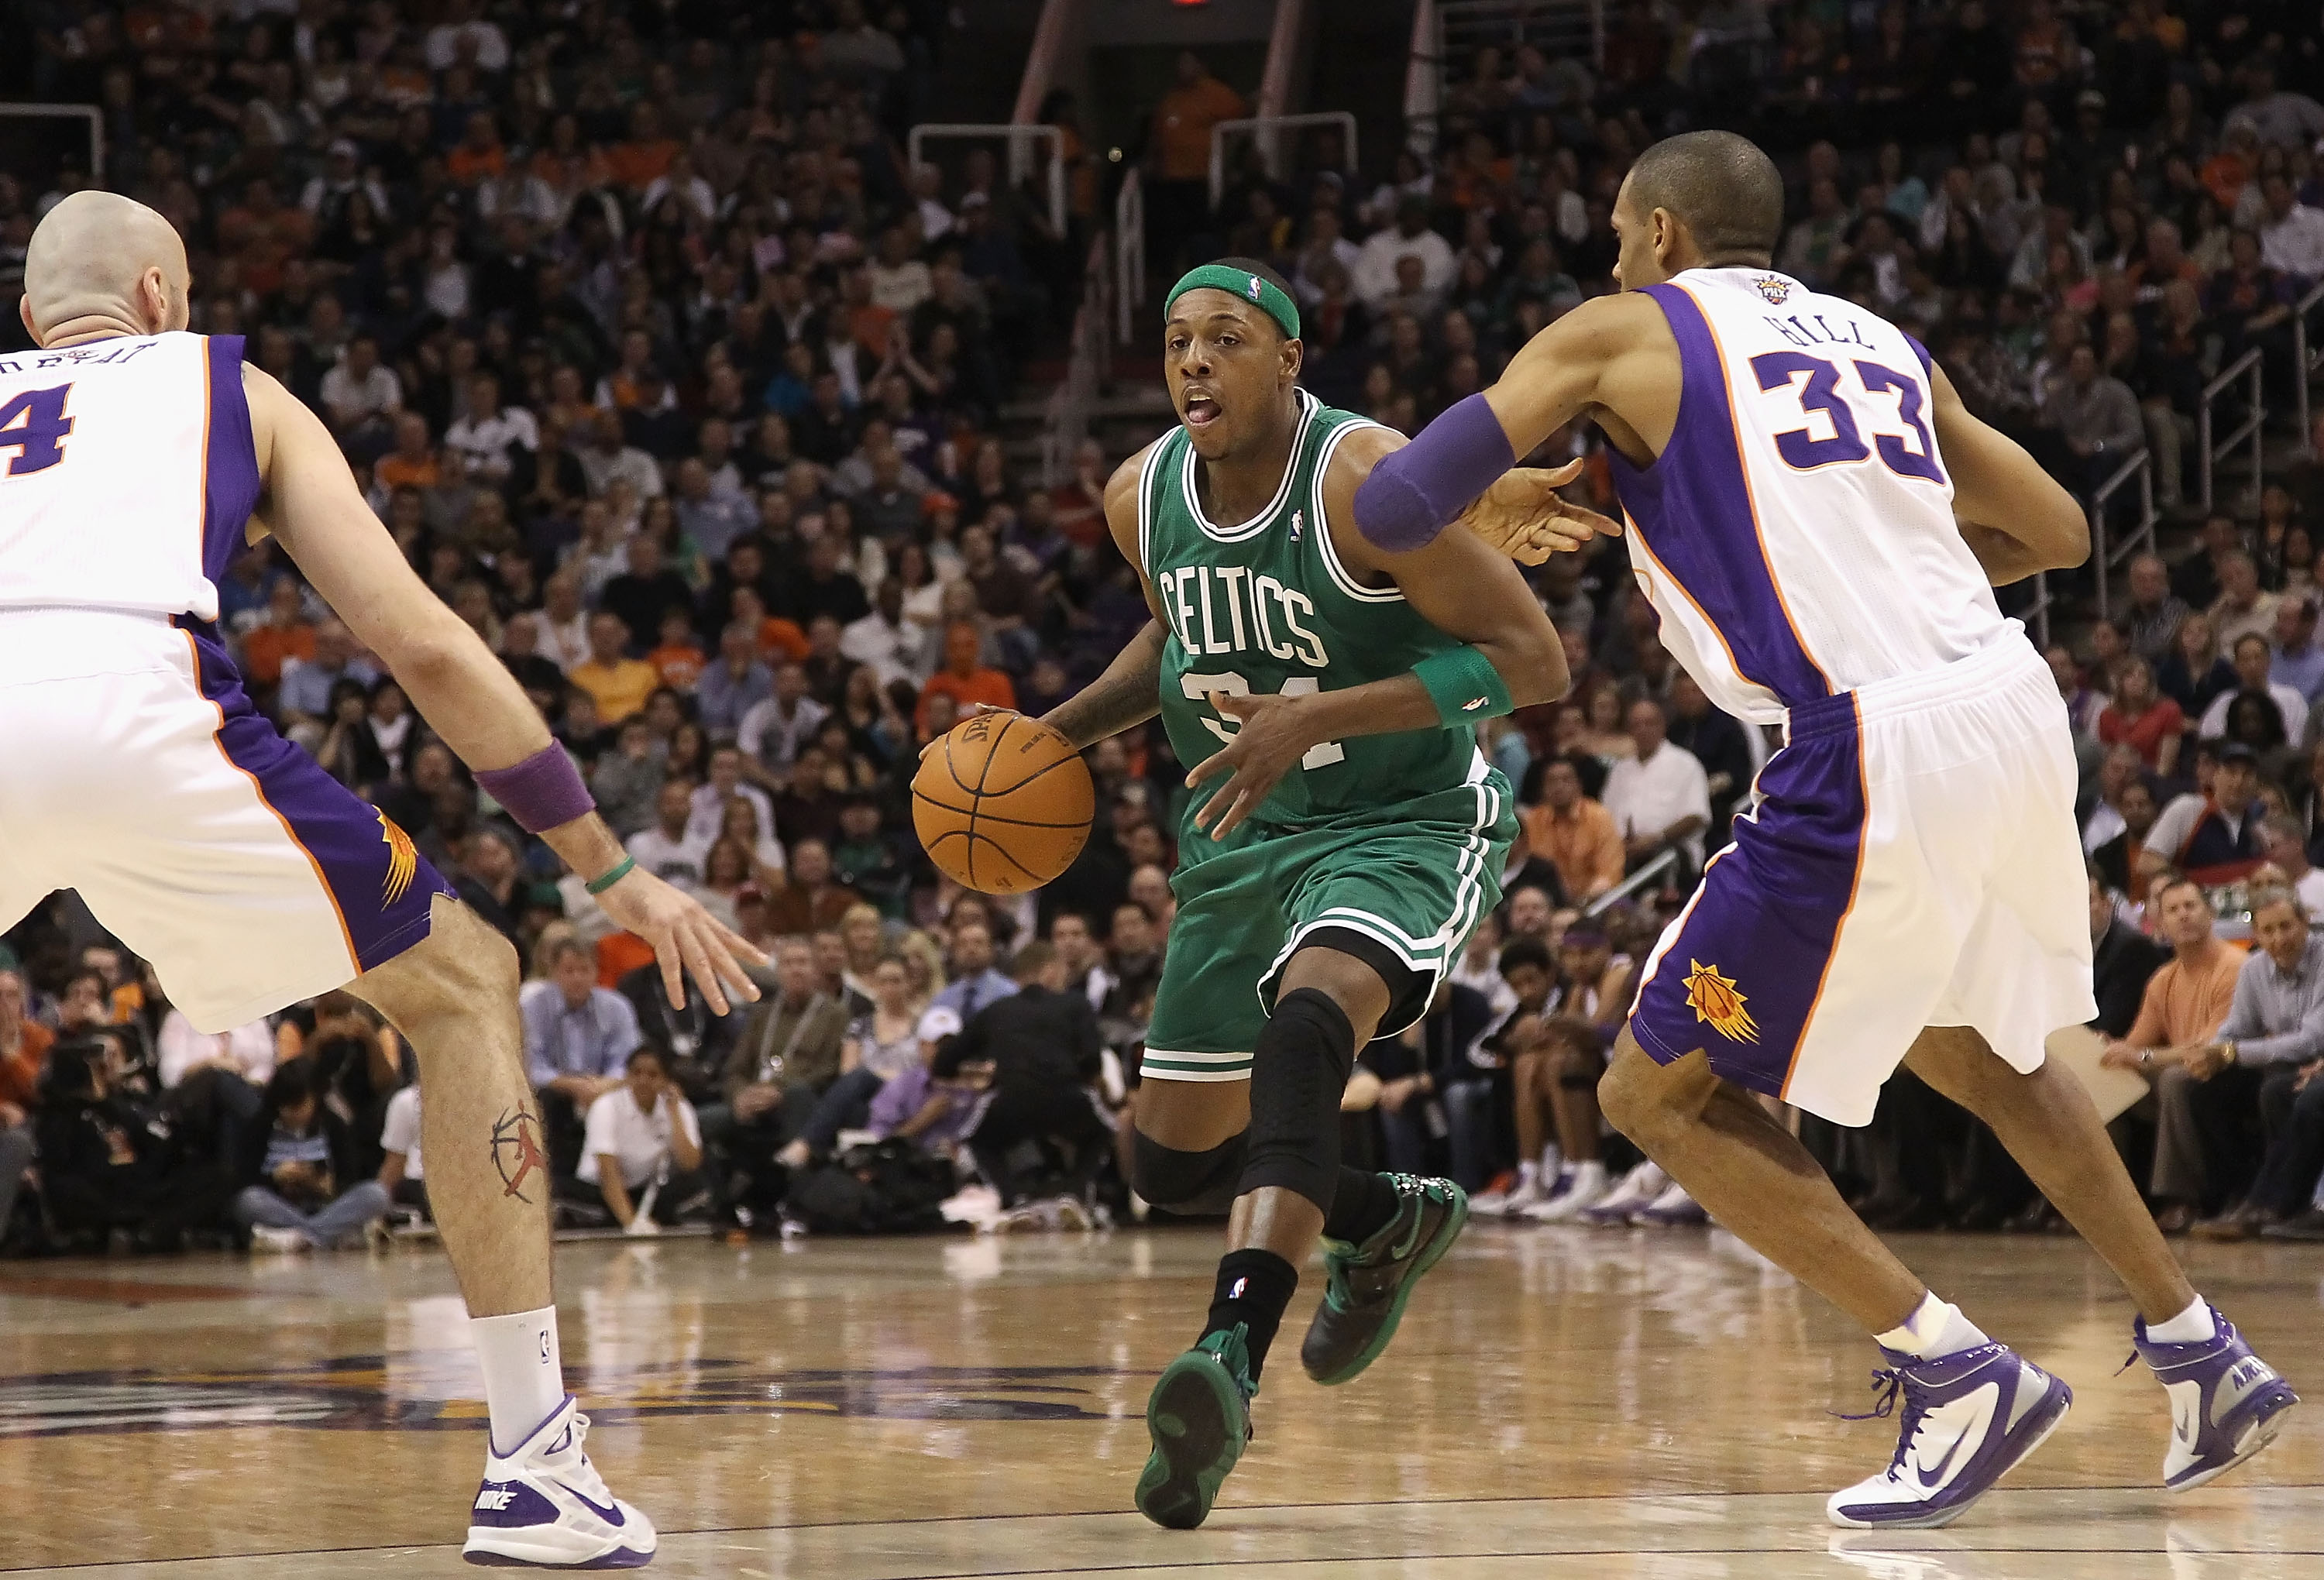 PHOENIX, AZ - JANUARY 28:  Paul Pierce #34 of the Boston Celtics handles the ball during the NBA game against the Phoenix Suns at US Airways Center on January 28, 2011 in Phoenix, Arizona. The Suns defeated the Celtics 88-71. NOTE TO USER: User expressly